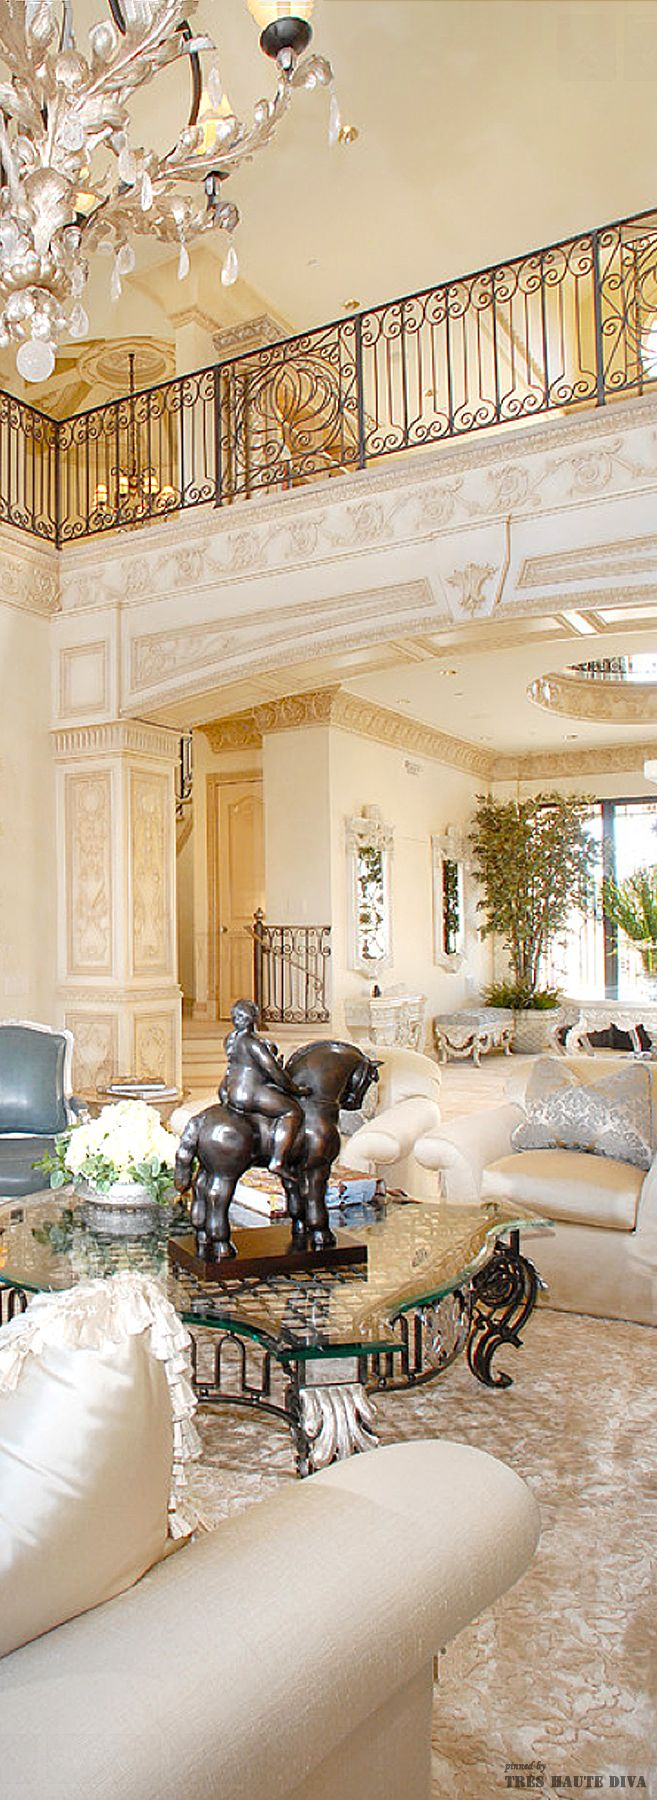 Best 25 french chateau ideas on pinterest o chateau for Home decor styles